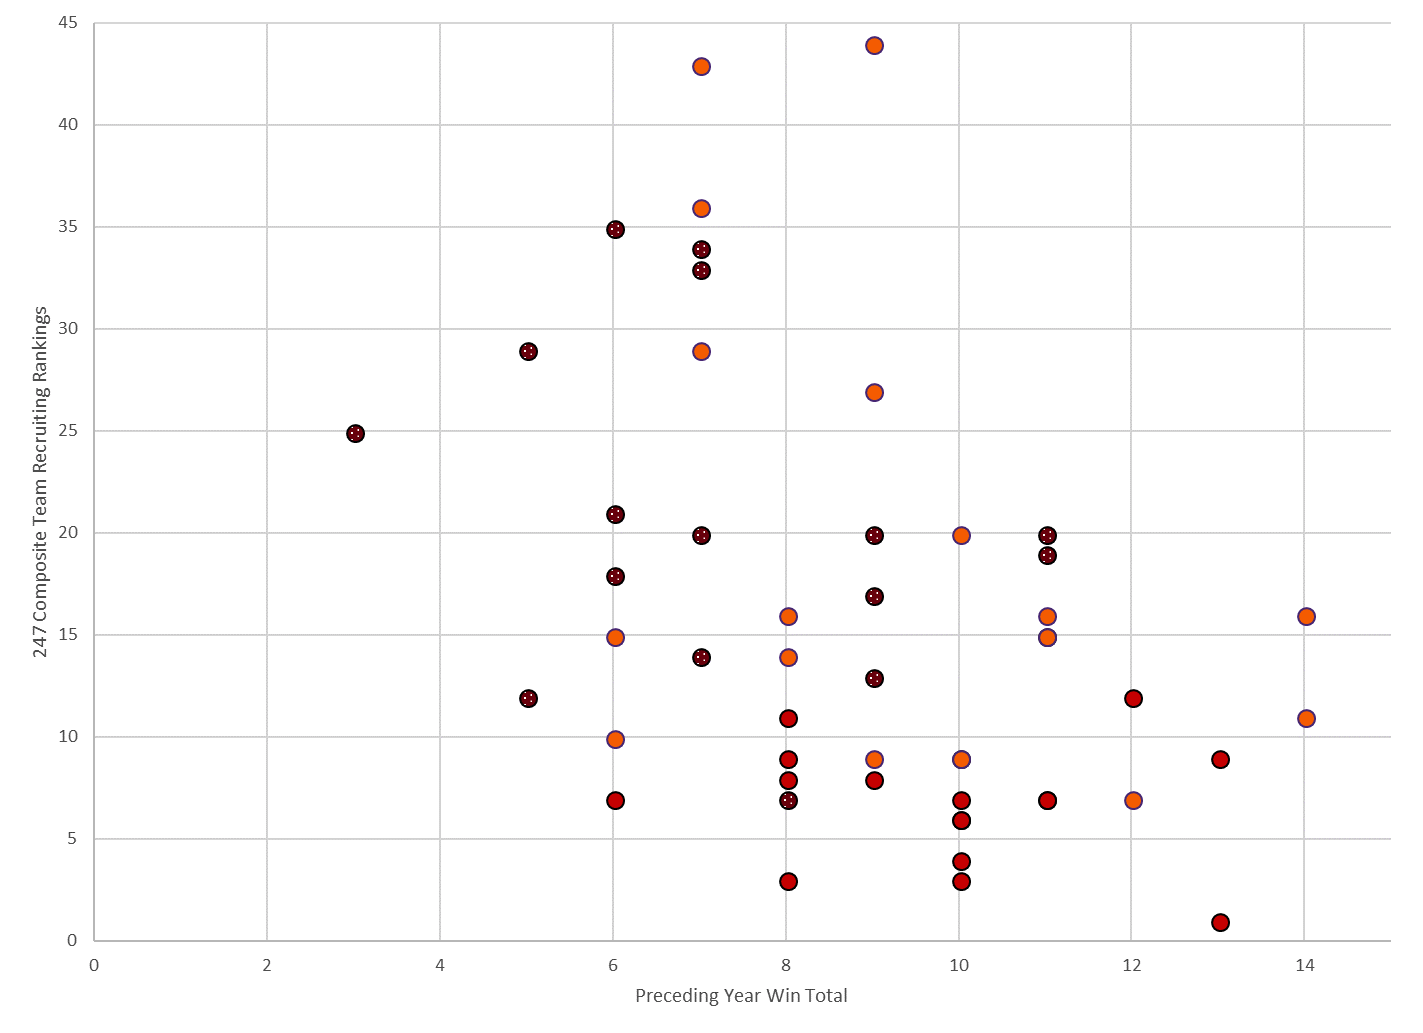 Figure 11. 247 Composite Team Recruiting Rankings for South Carolina, Georgia, and Clemson each year over the period 2002-2018 vs each team's win total for the preceding year.